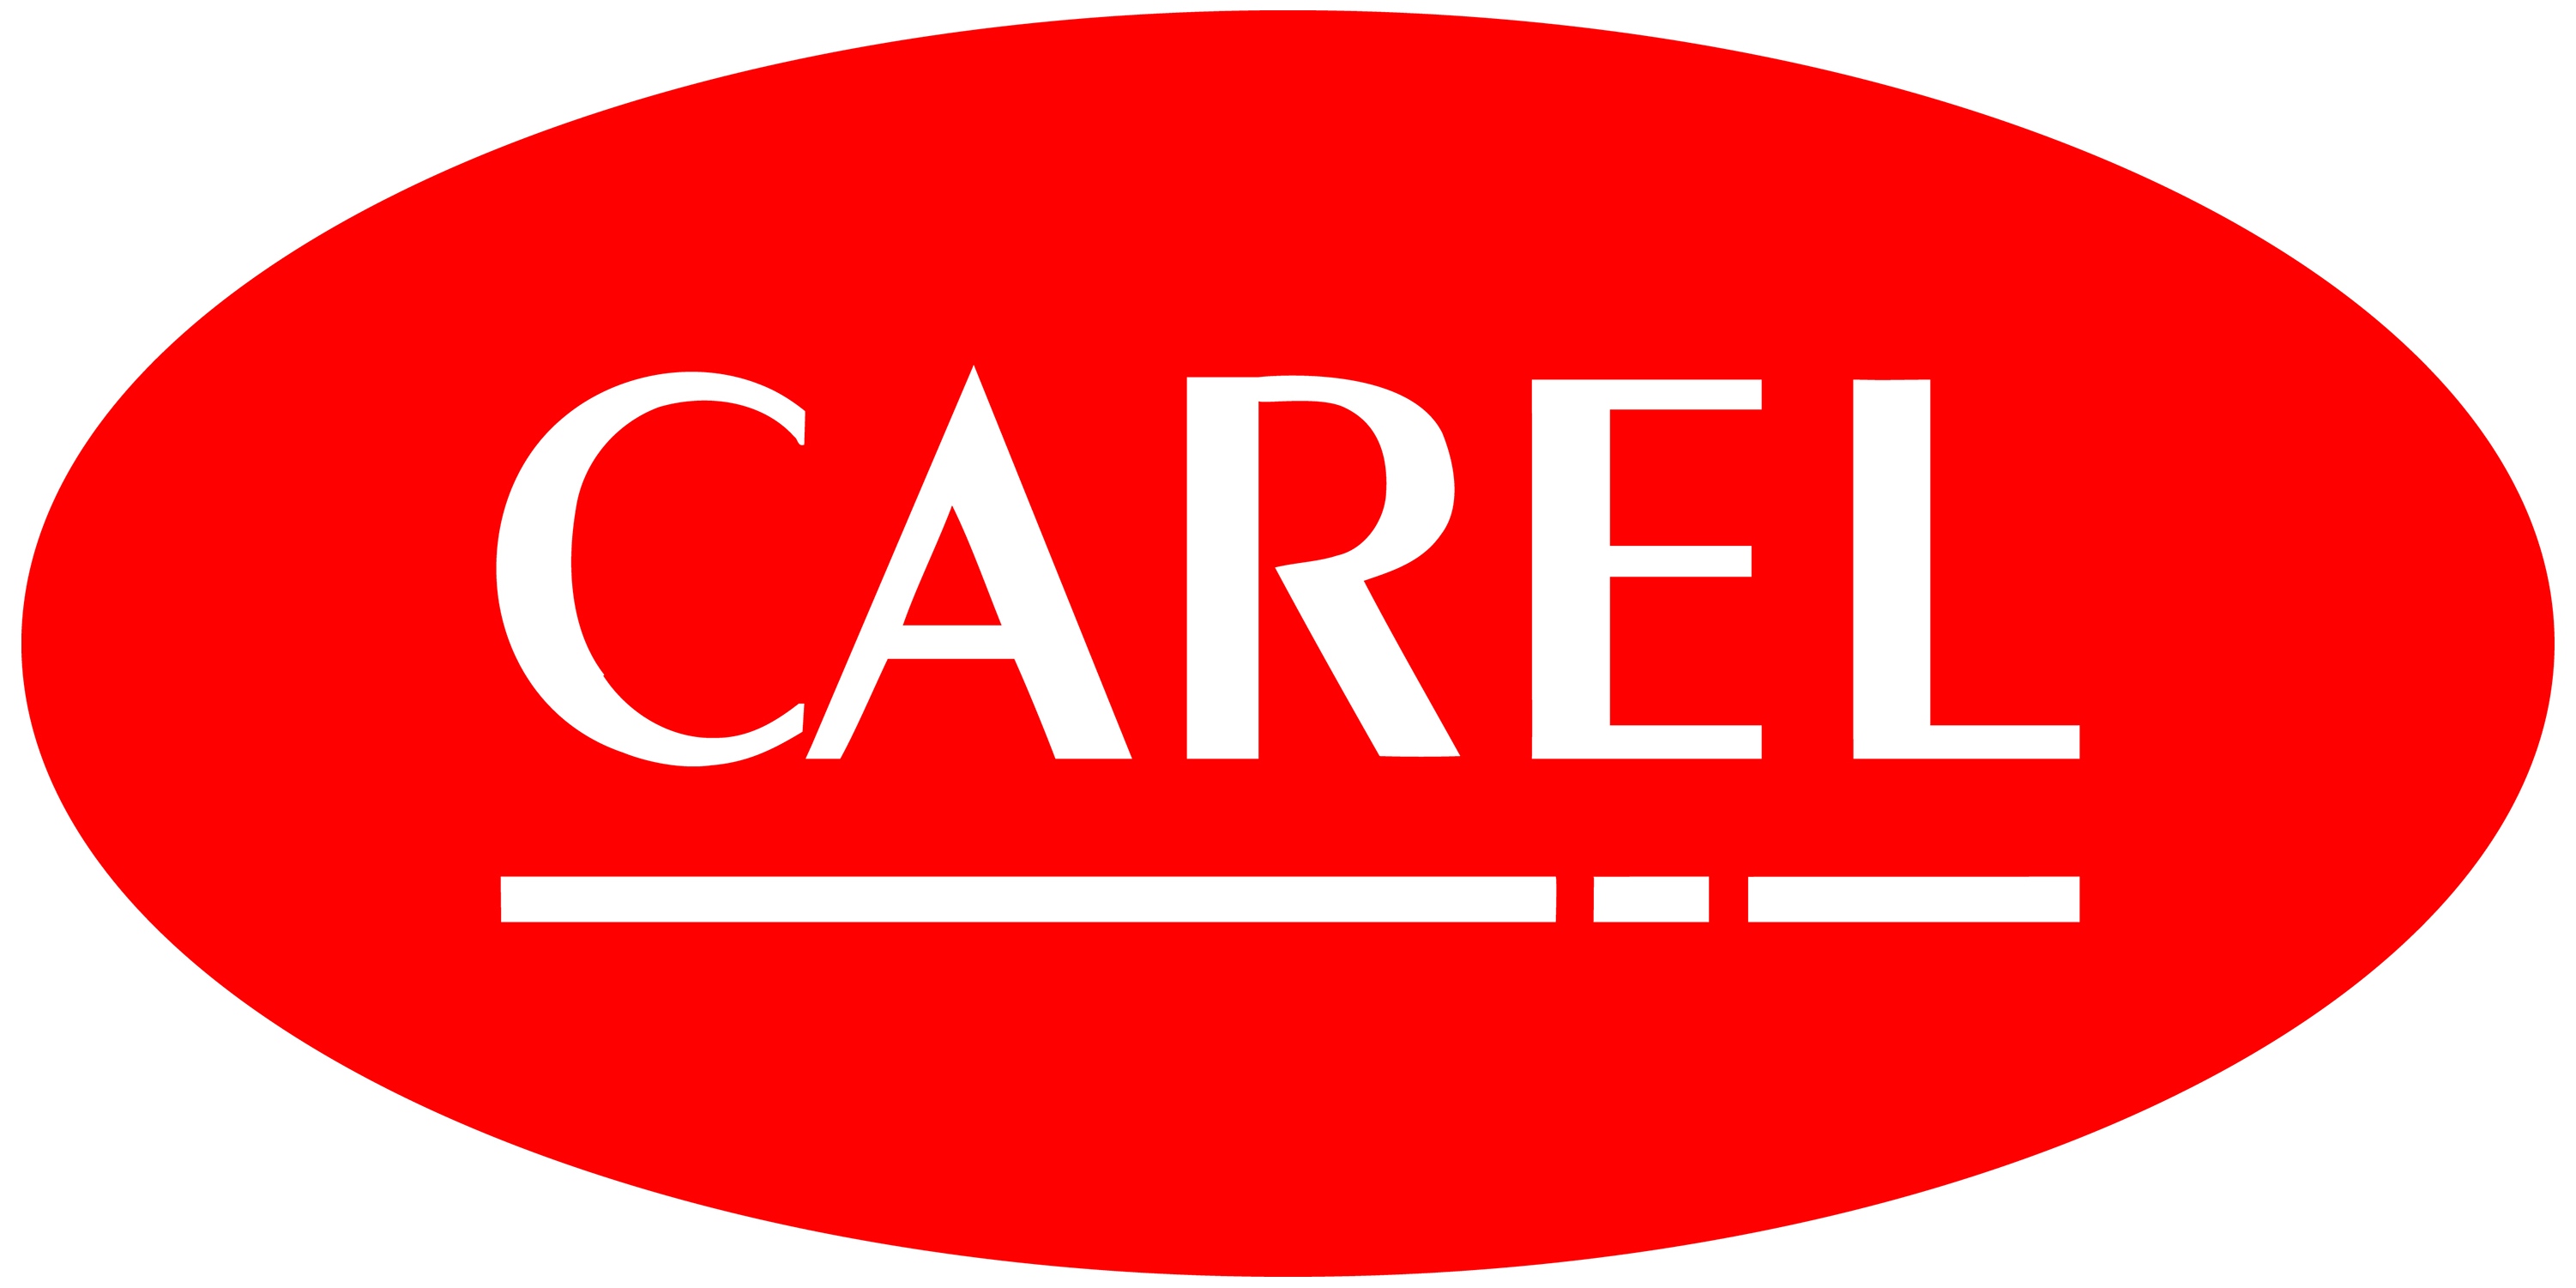 CAREL - Working for CAREL